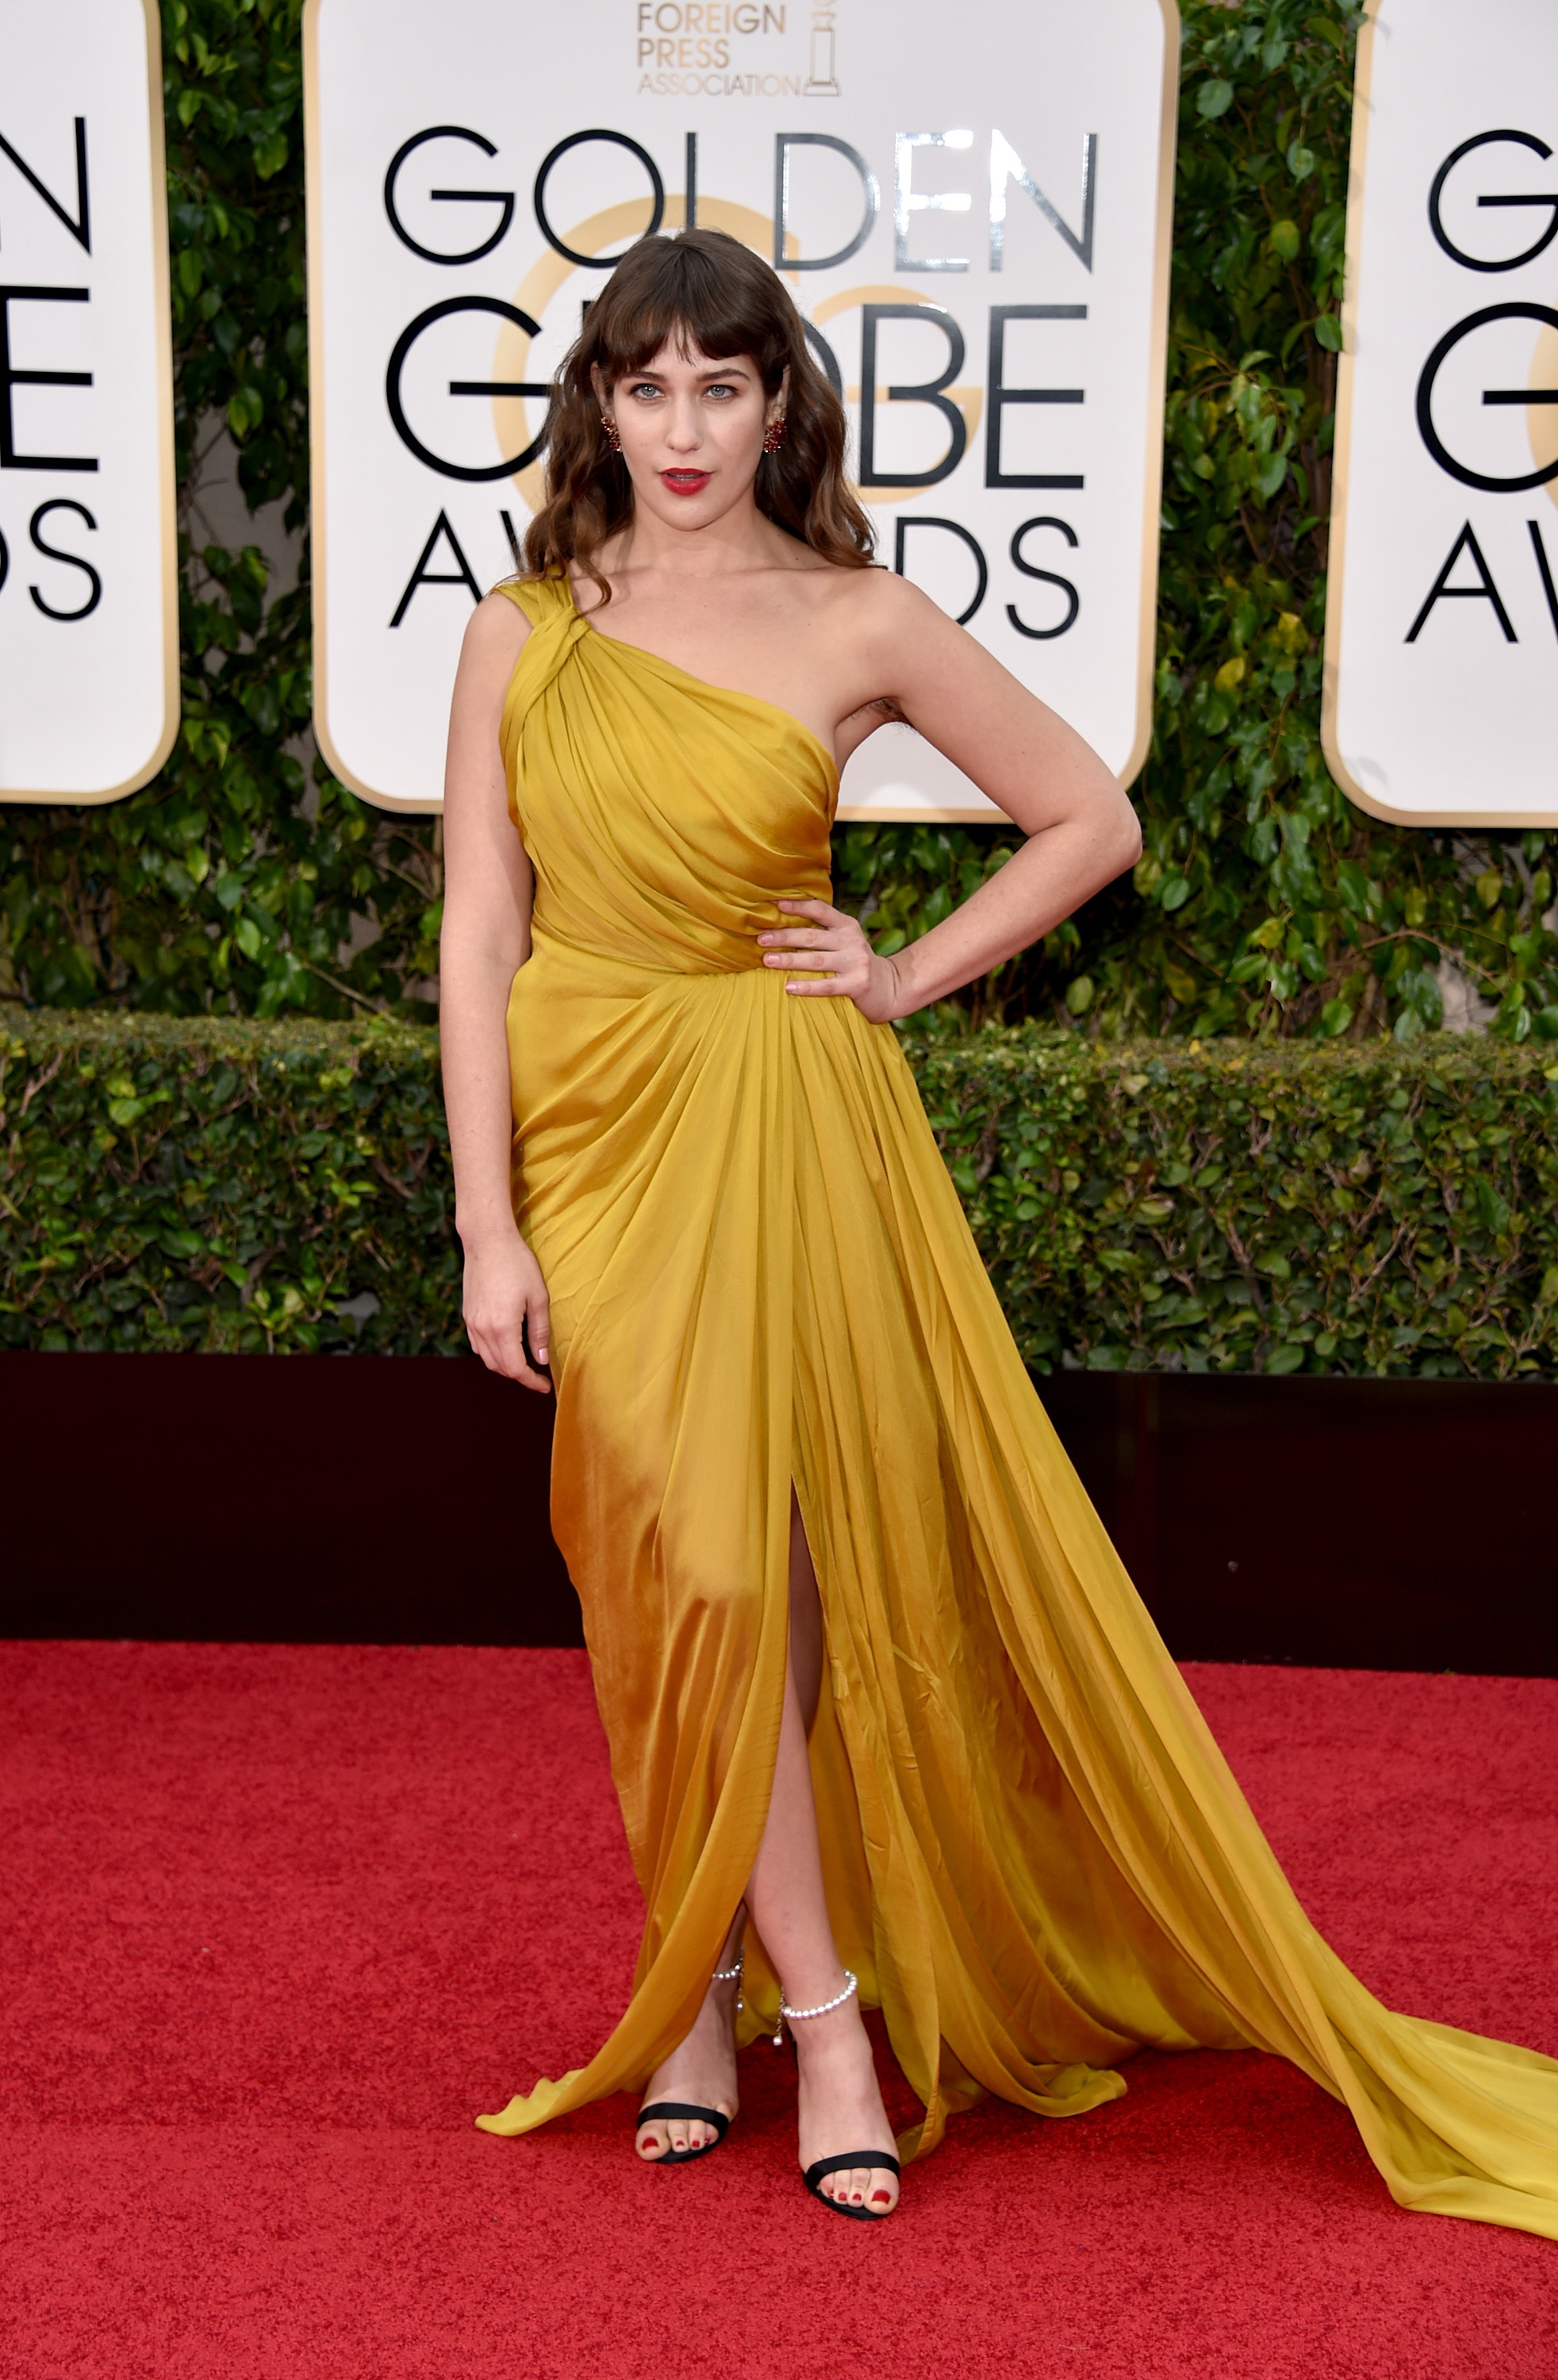 Golden Globes 2016 Red Carpet: Shiny Gowns, Capes, and Old Hollywood ...